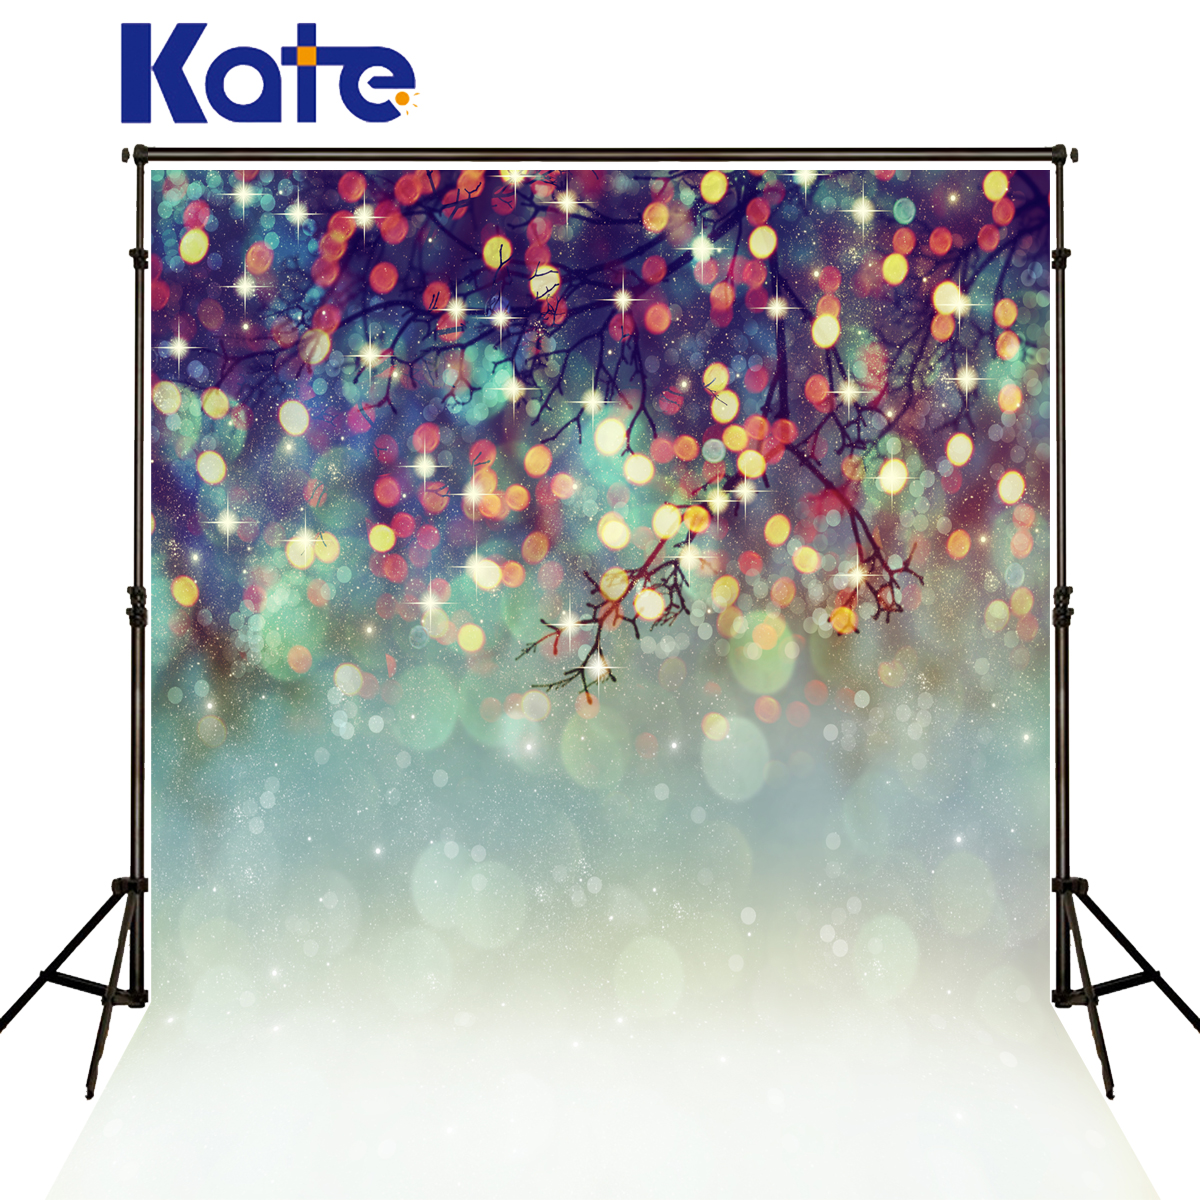 Kate Christmas  Backdrops Photography Spot Colour Branch Fond Photo noel Background Dream Tree Fundo Fotografico arvore de Natal a backdrop christmas backgrounds new year noel golden tree gift ball xmas photocall vintage fond newborns